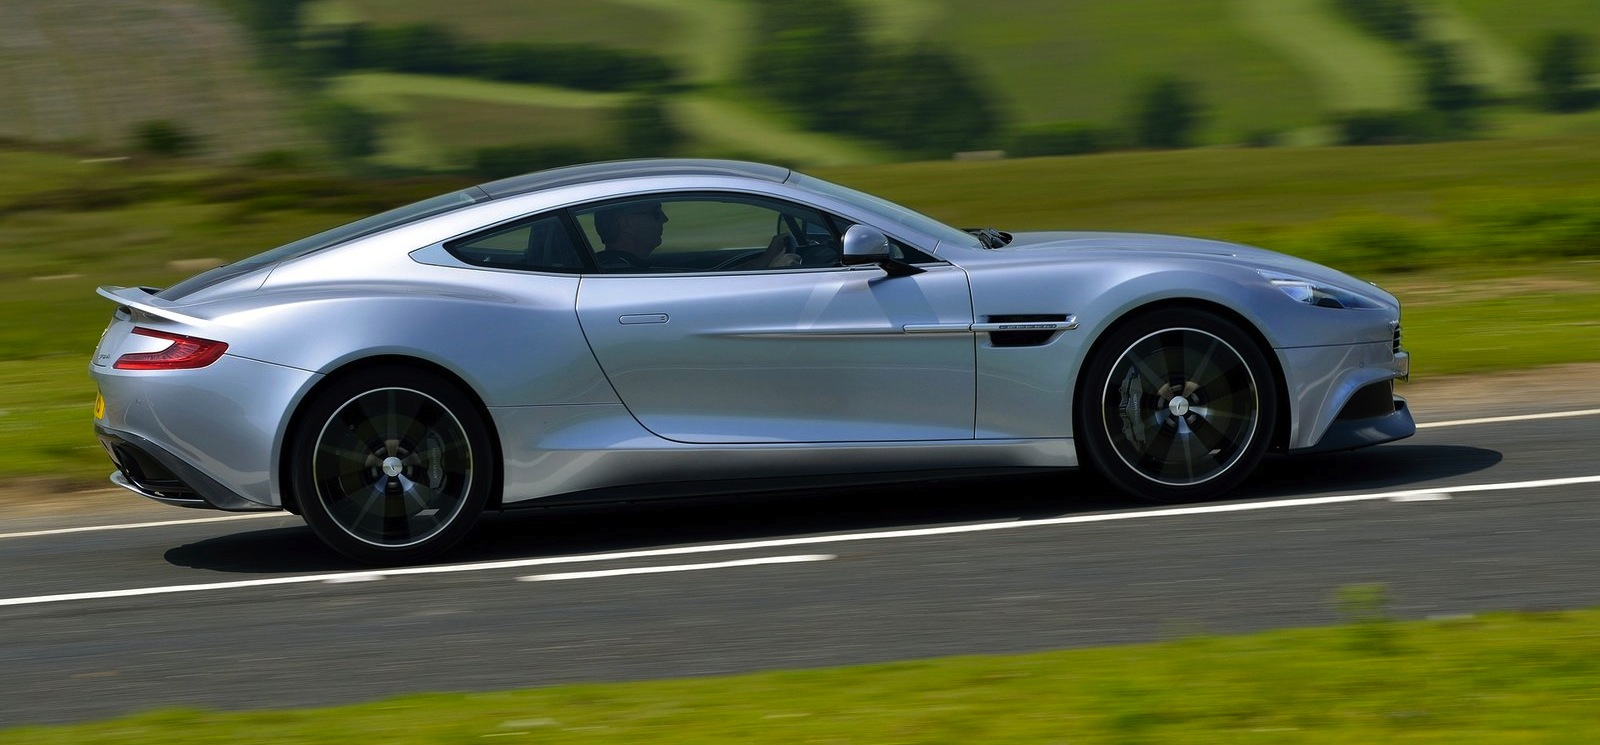 Luxury Vehicle: Aston Martin Sports Cars, SUV To Borrow New Mercedes-Benz